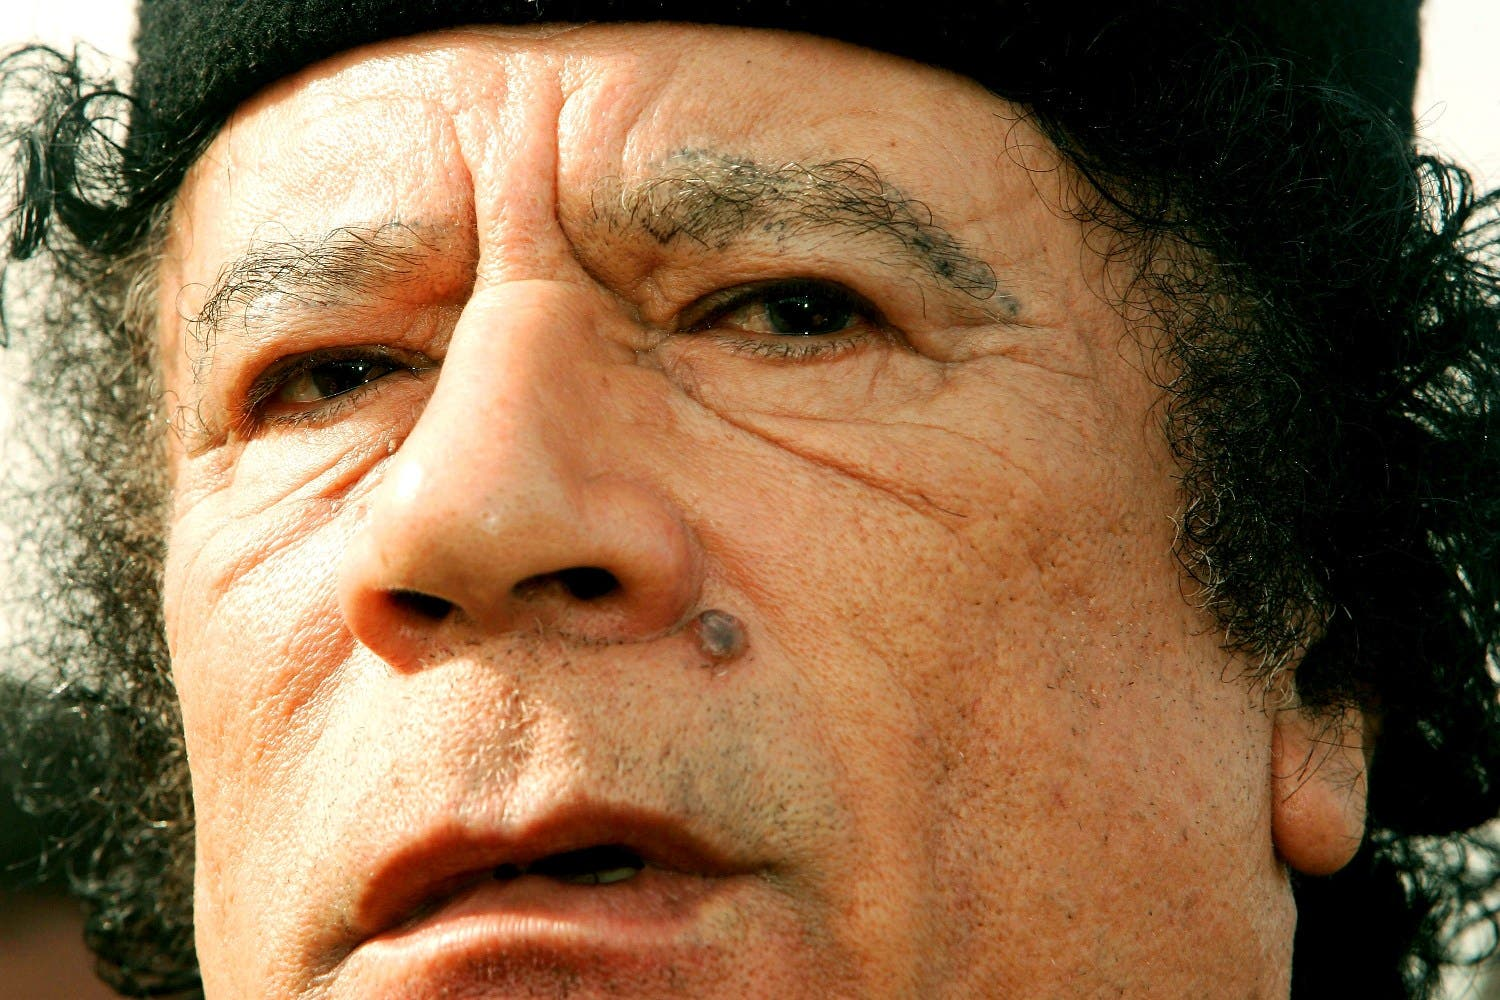 The third leader on the African continent to fall in less than 6 months, Colonel Gaddafi's fate may be one visited upon many other Dictators globally in the near future.